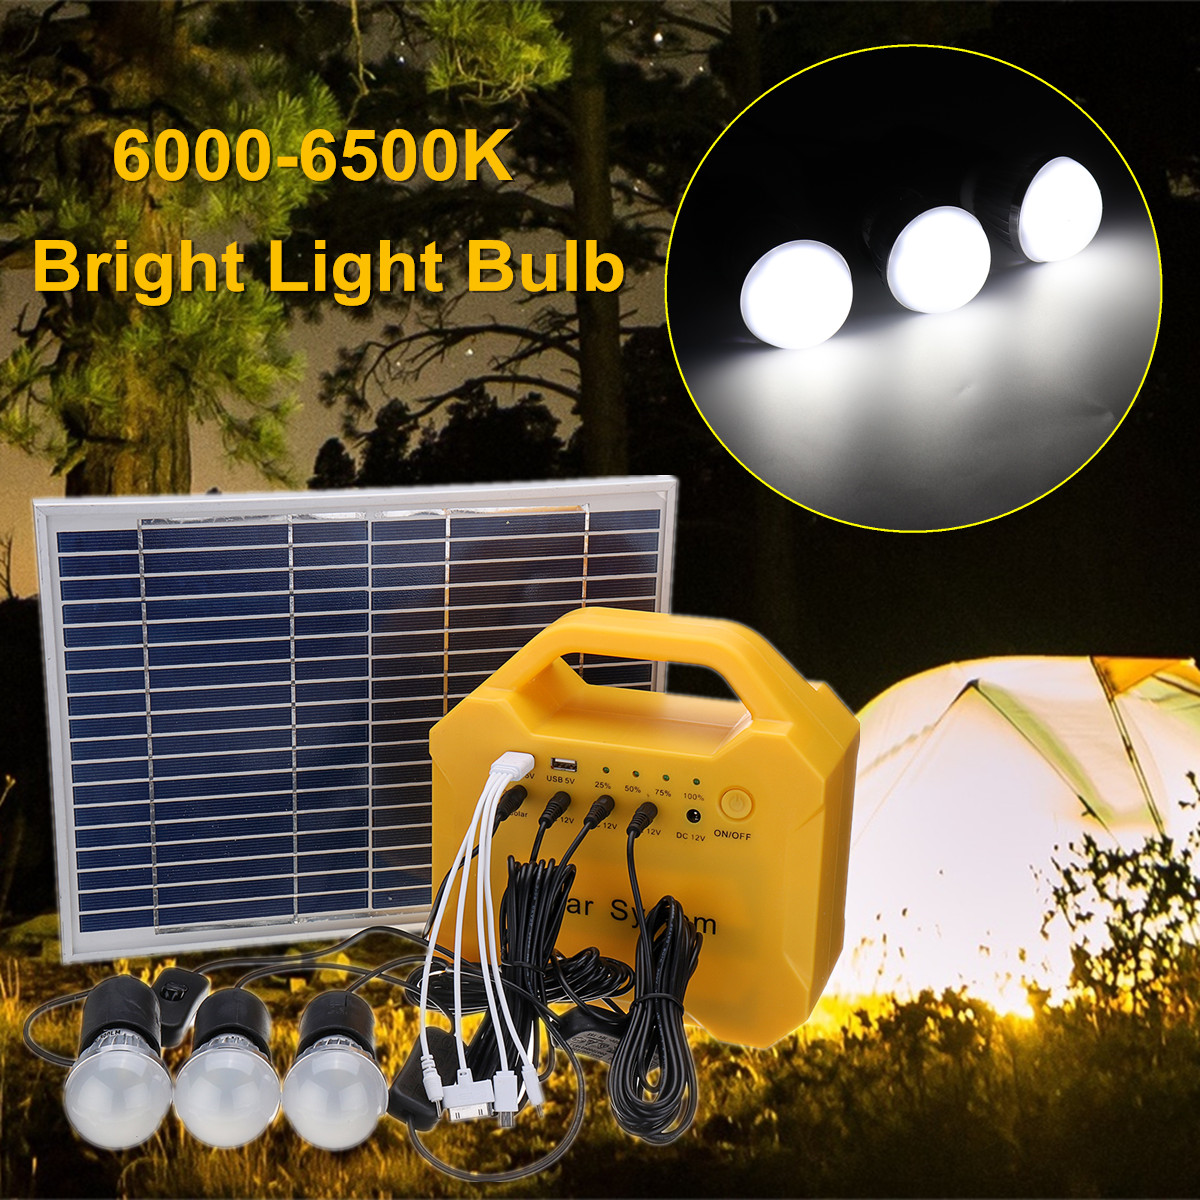 Solar Panel Power Storage 18V Generator LED Light USB Charge System Home Outdoor Large Capacity Battery Energy Saving Camping